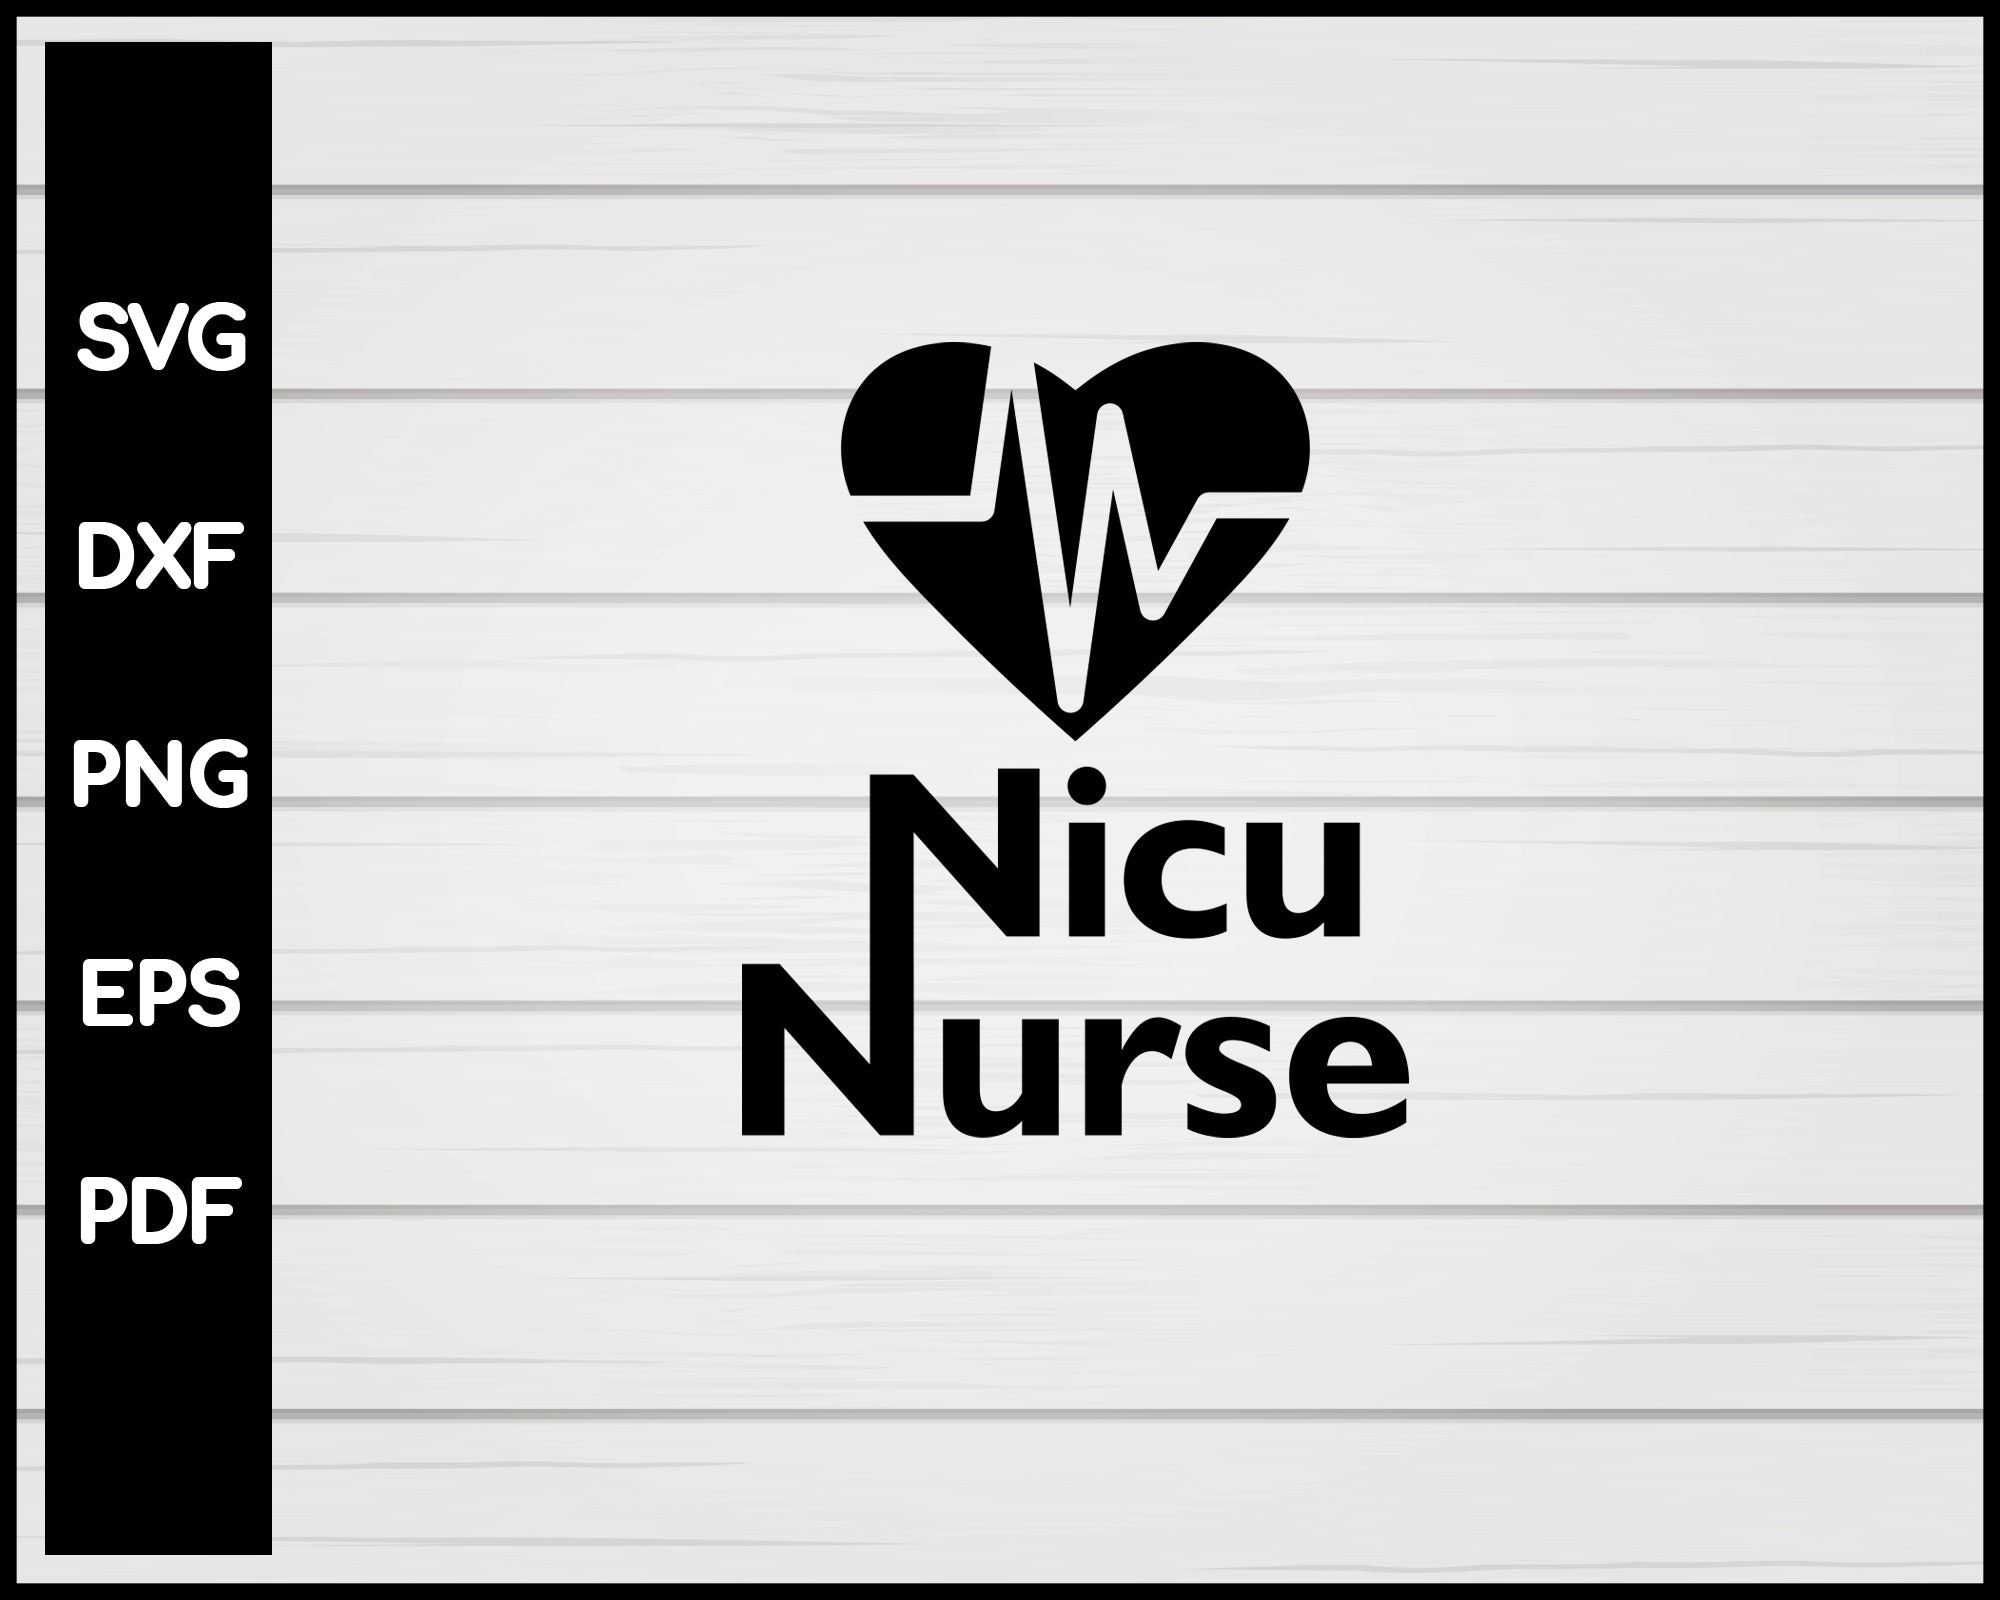 Nice Nurse svg Cut File For Cricut Silhouette eps png dxf Printable Files